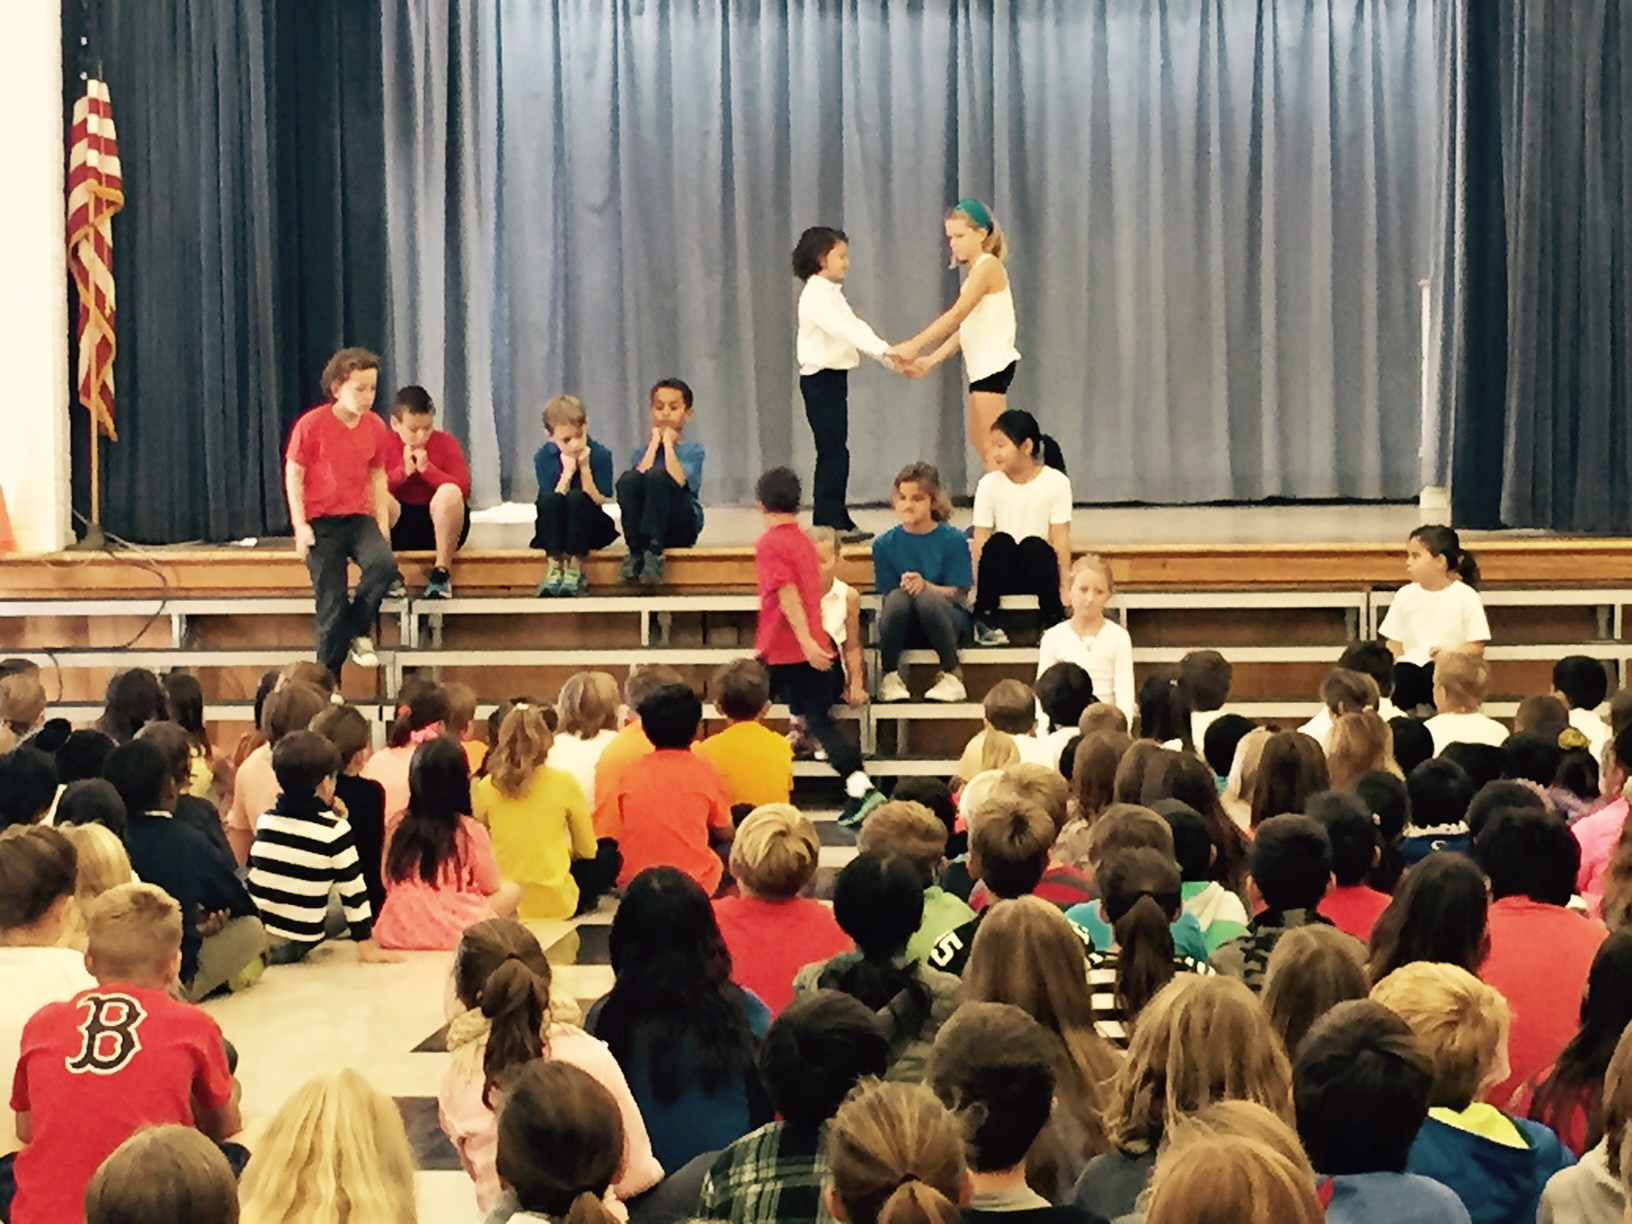 4th grade students perform in the MPR